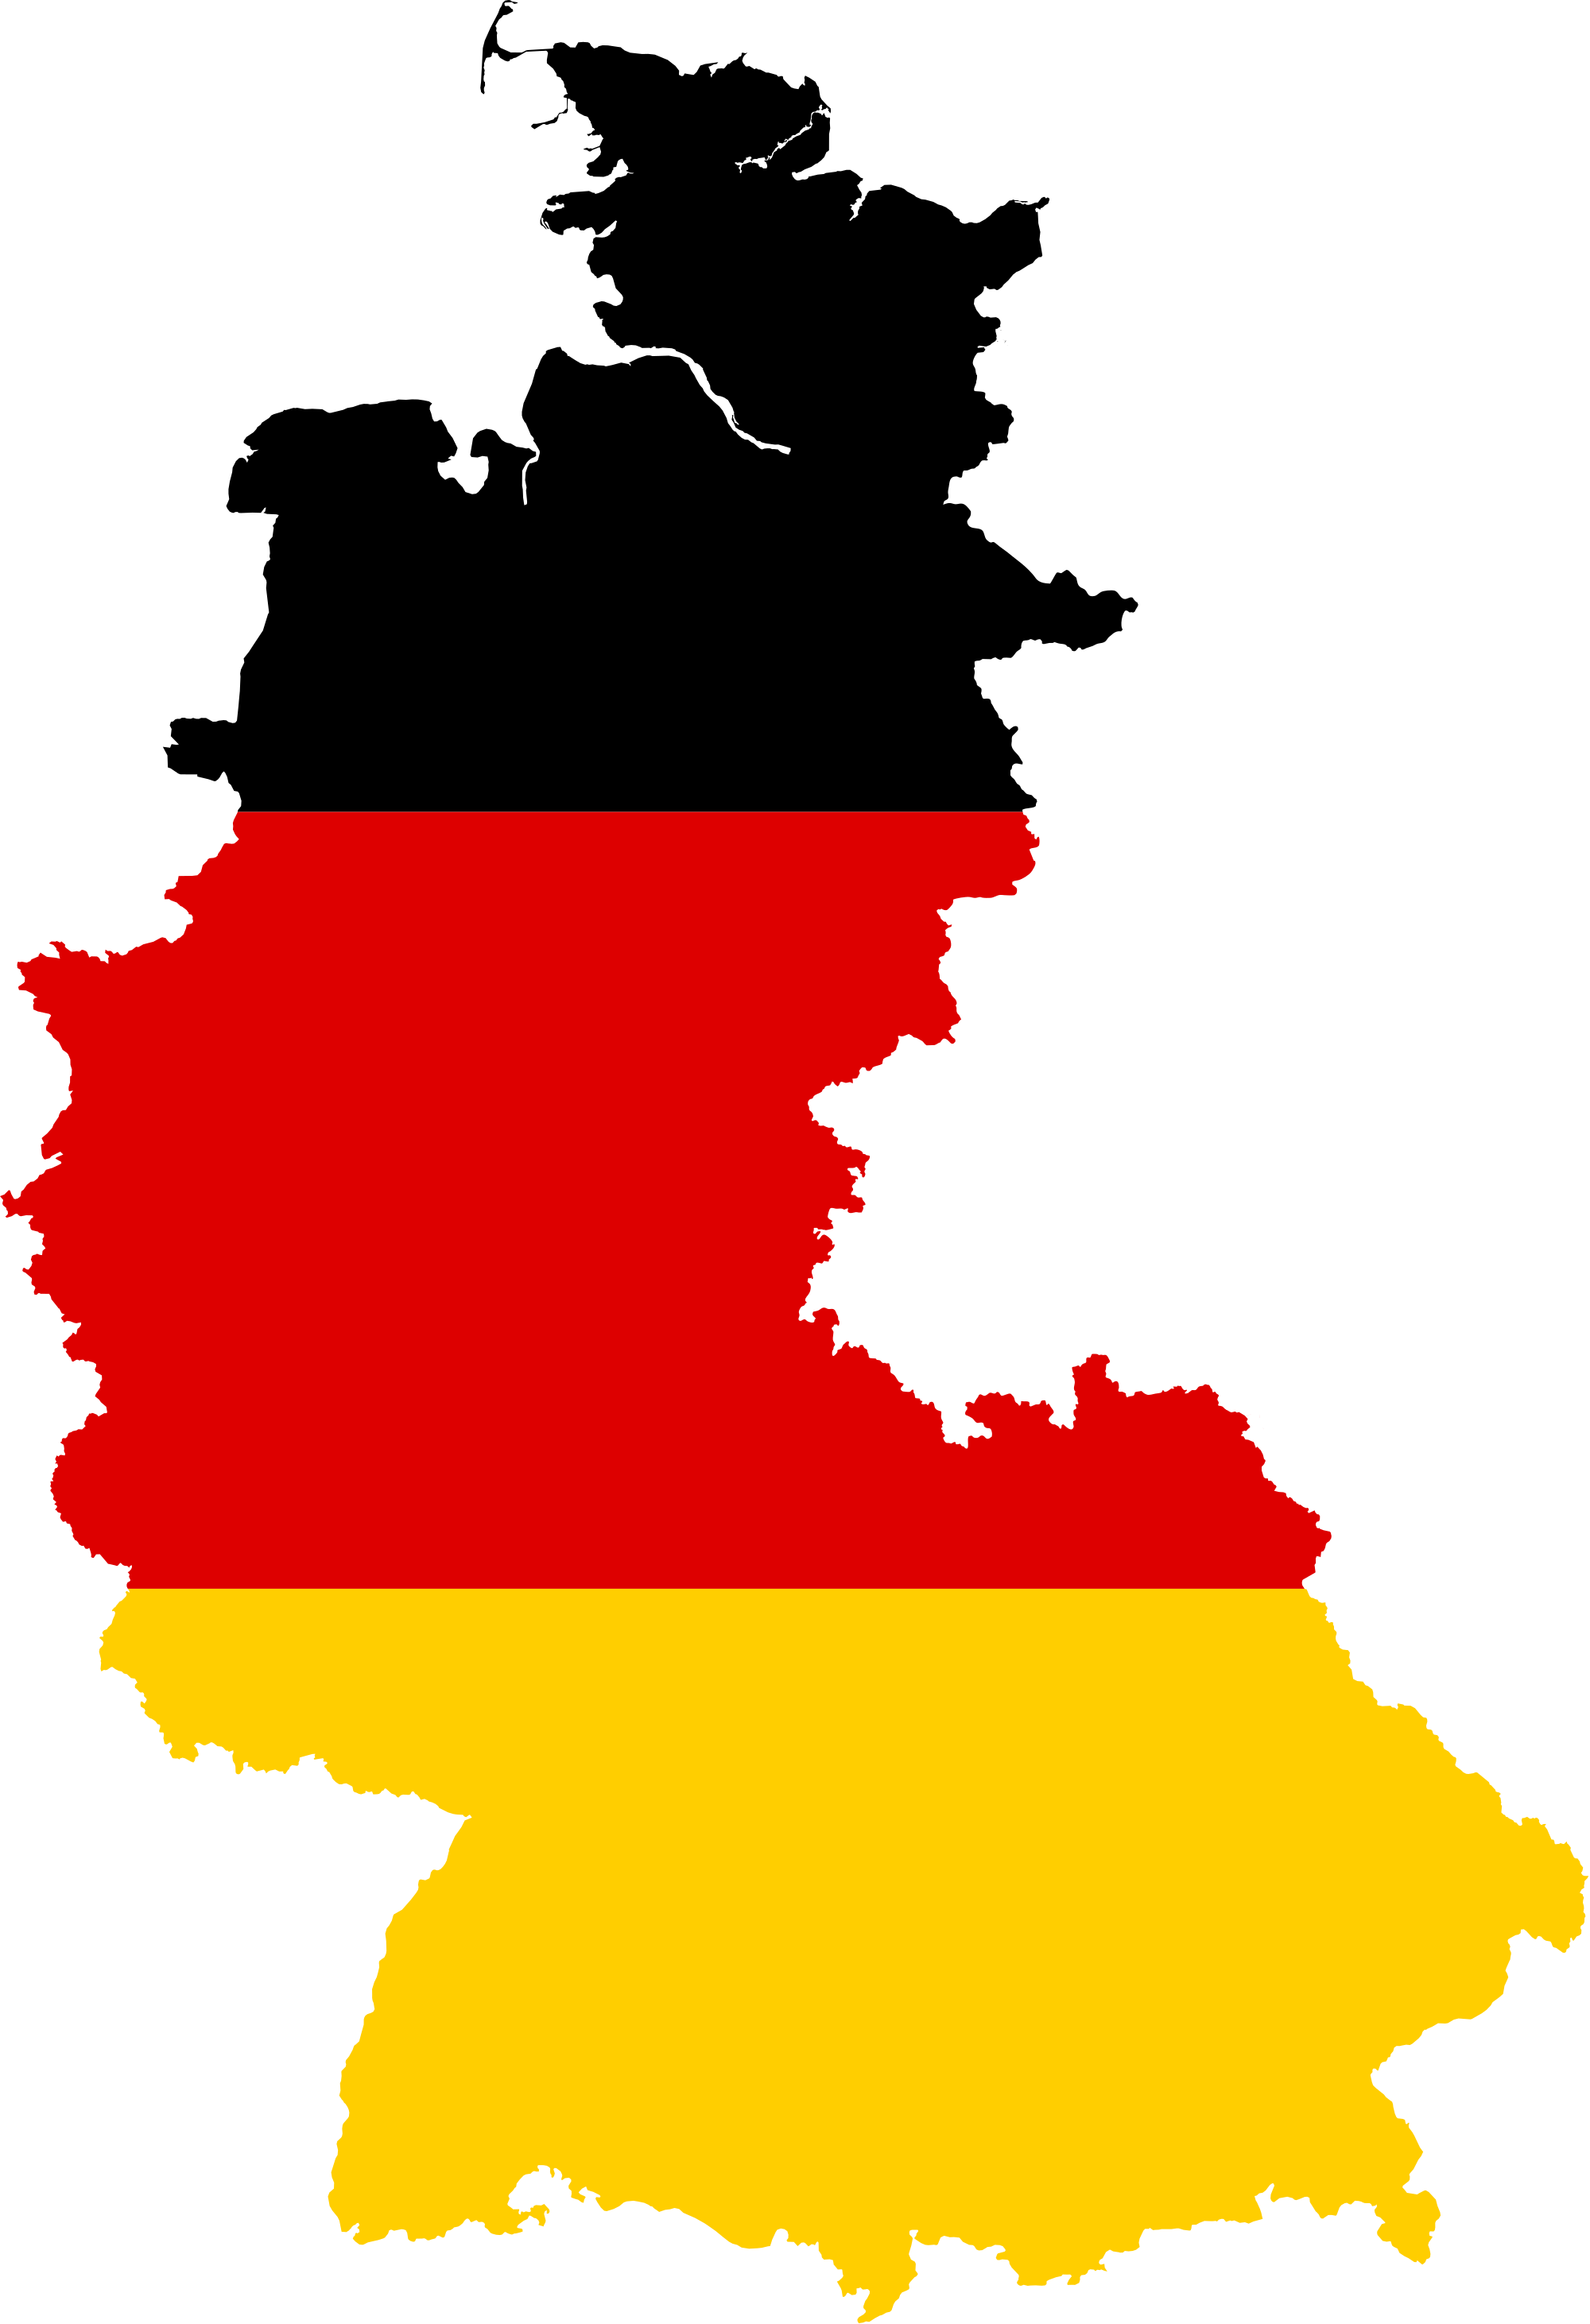 German clipart flag germany. Politics reflections of occupiers